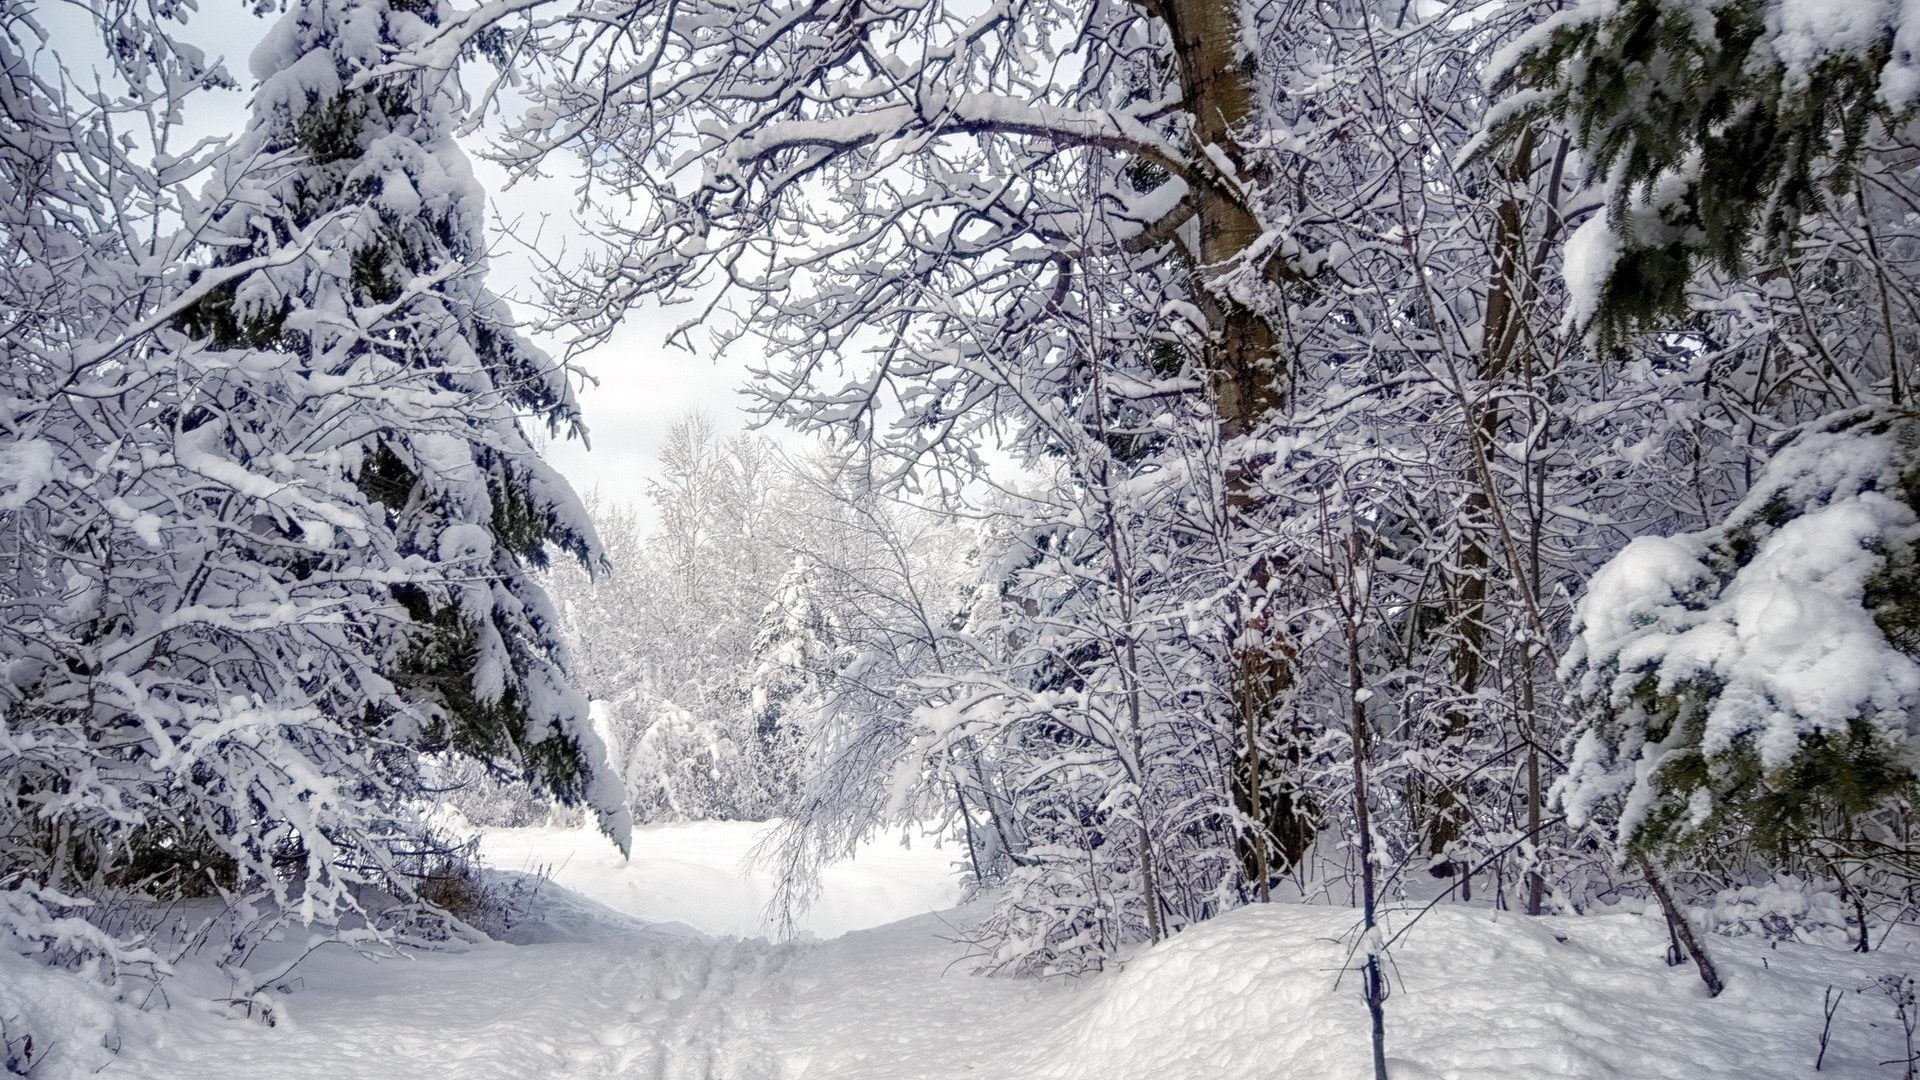 Winter Forest Snow Trees Path Desktop Animated Wallpaper Free